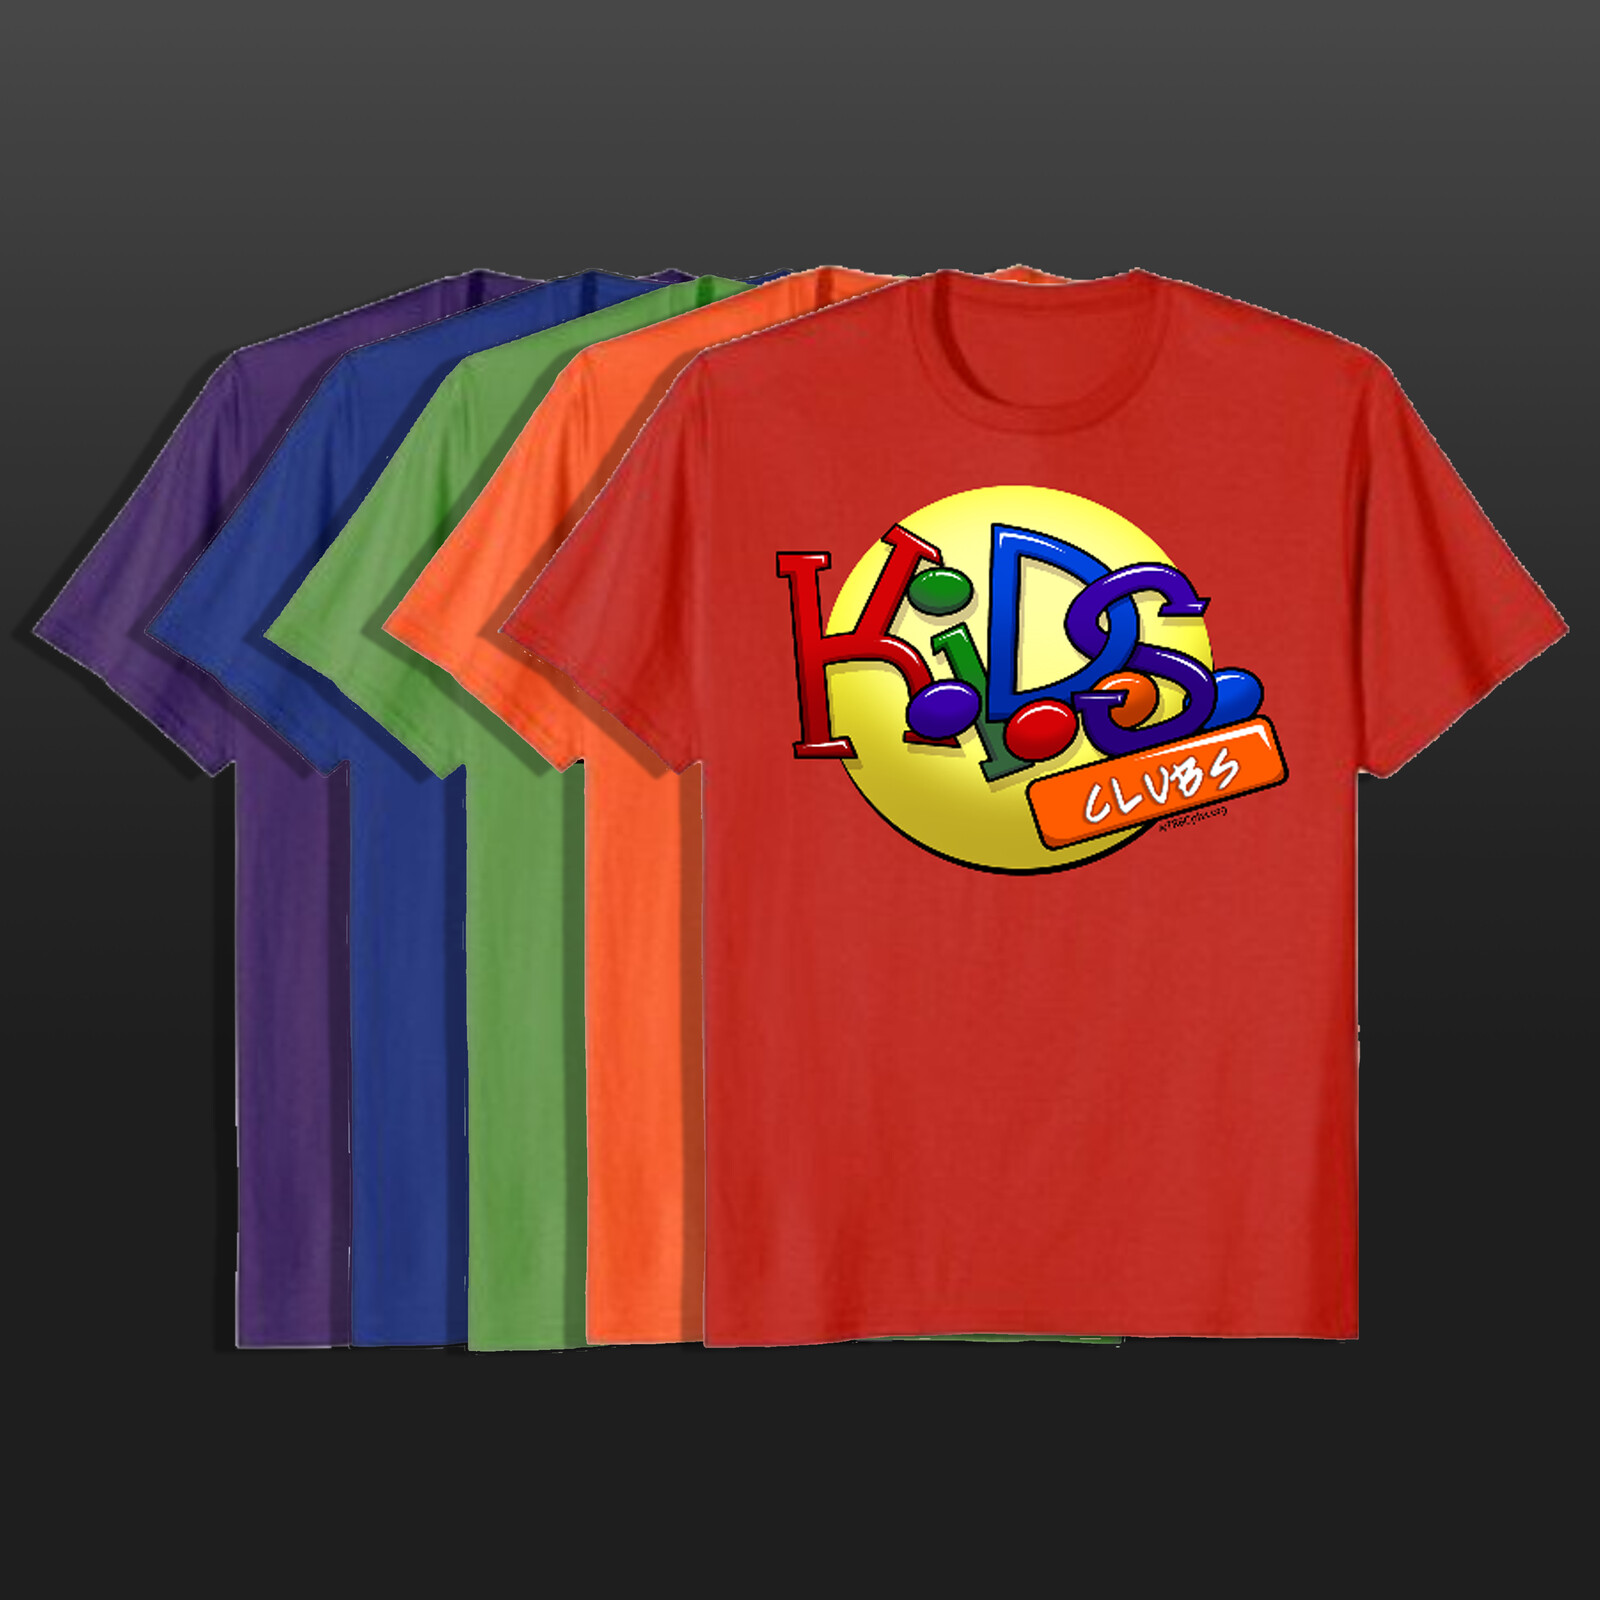 Mock-up of Colorful T-Shirts printed for K.I.D.S. Club